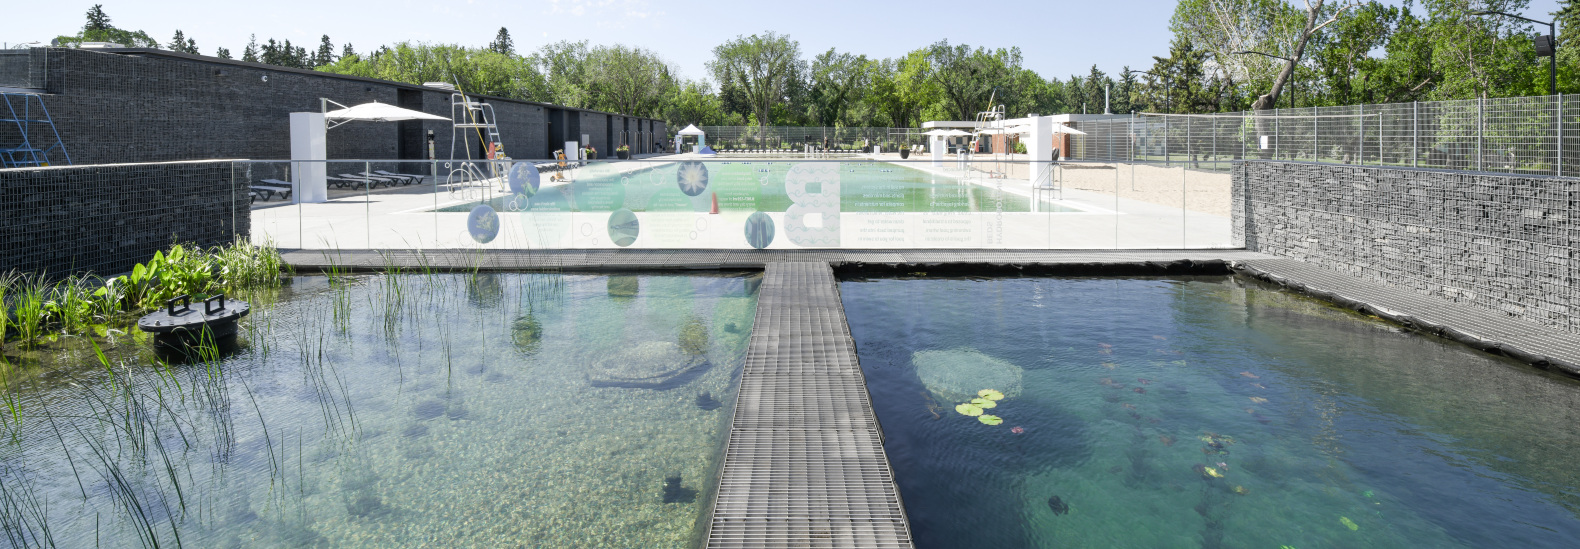 Canada unveils its first chemical-free public outdoor pool